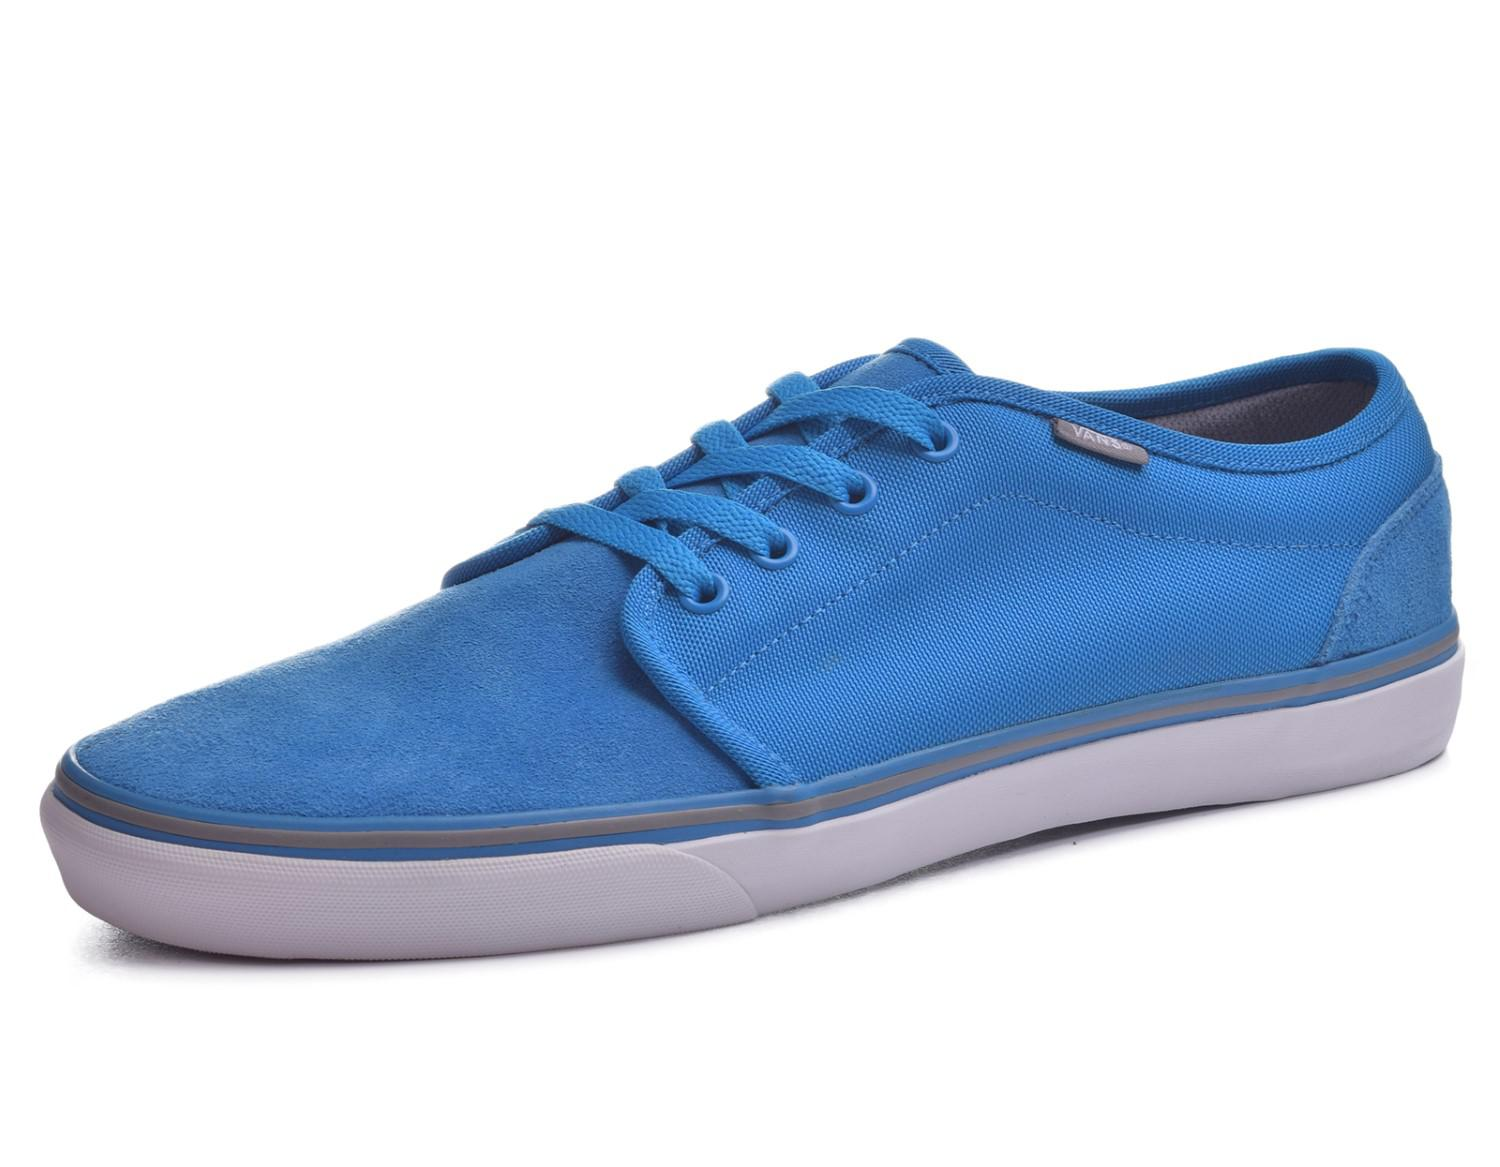 Lyst - Vans Mens Lxvi 106 Vulcanized Mlx Sneakers Lightbluecharcoal ... 2c2ff6fb0